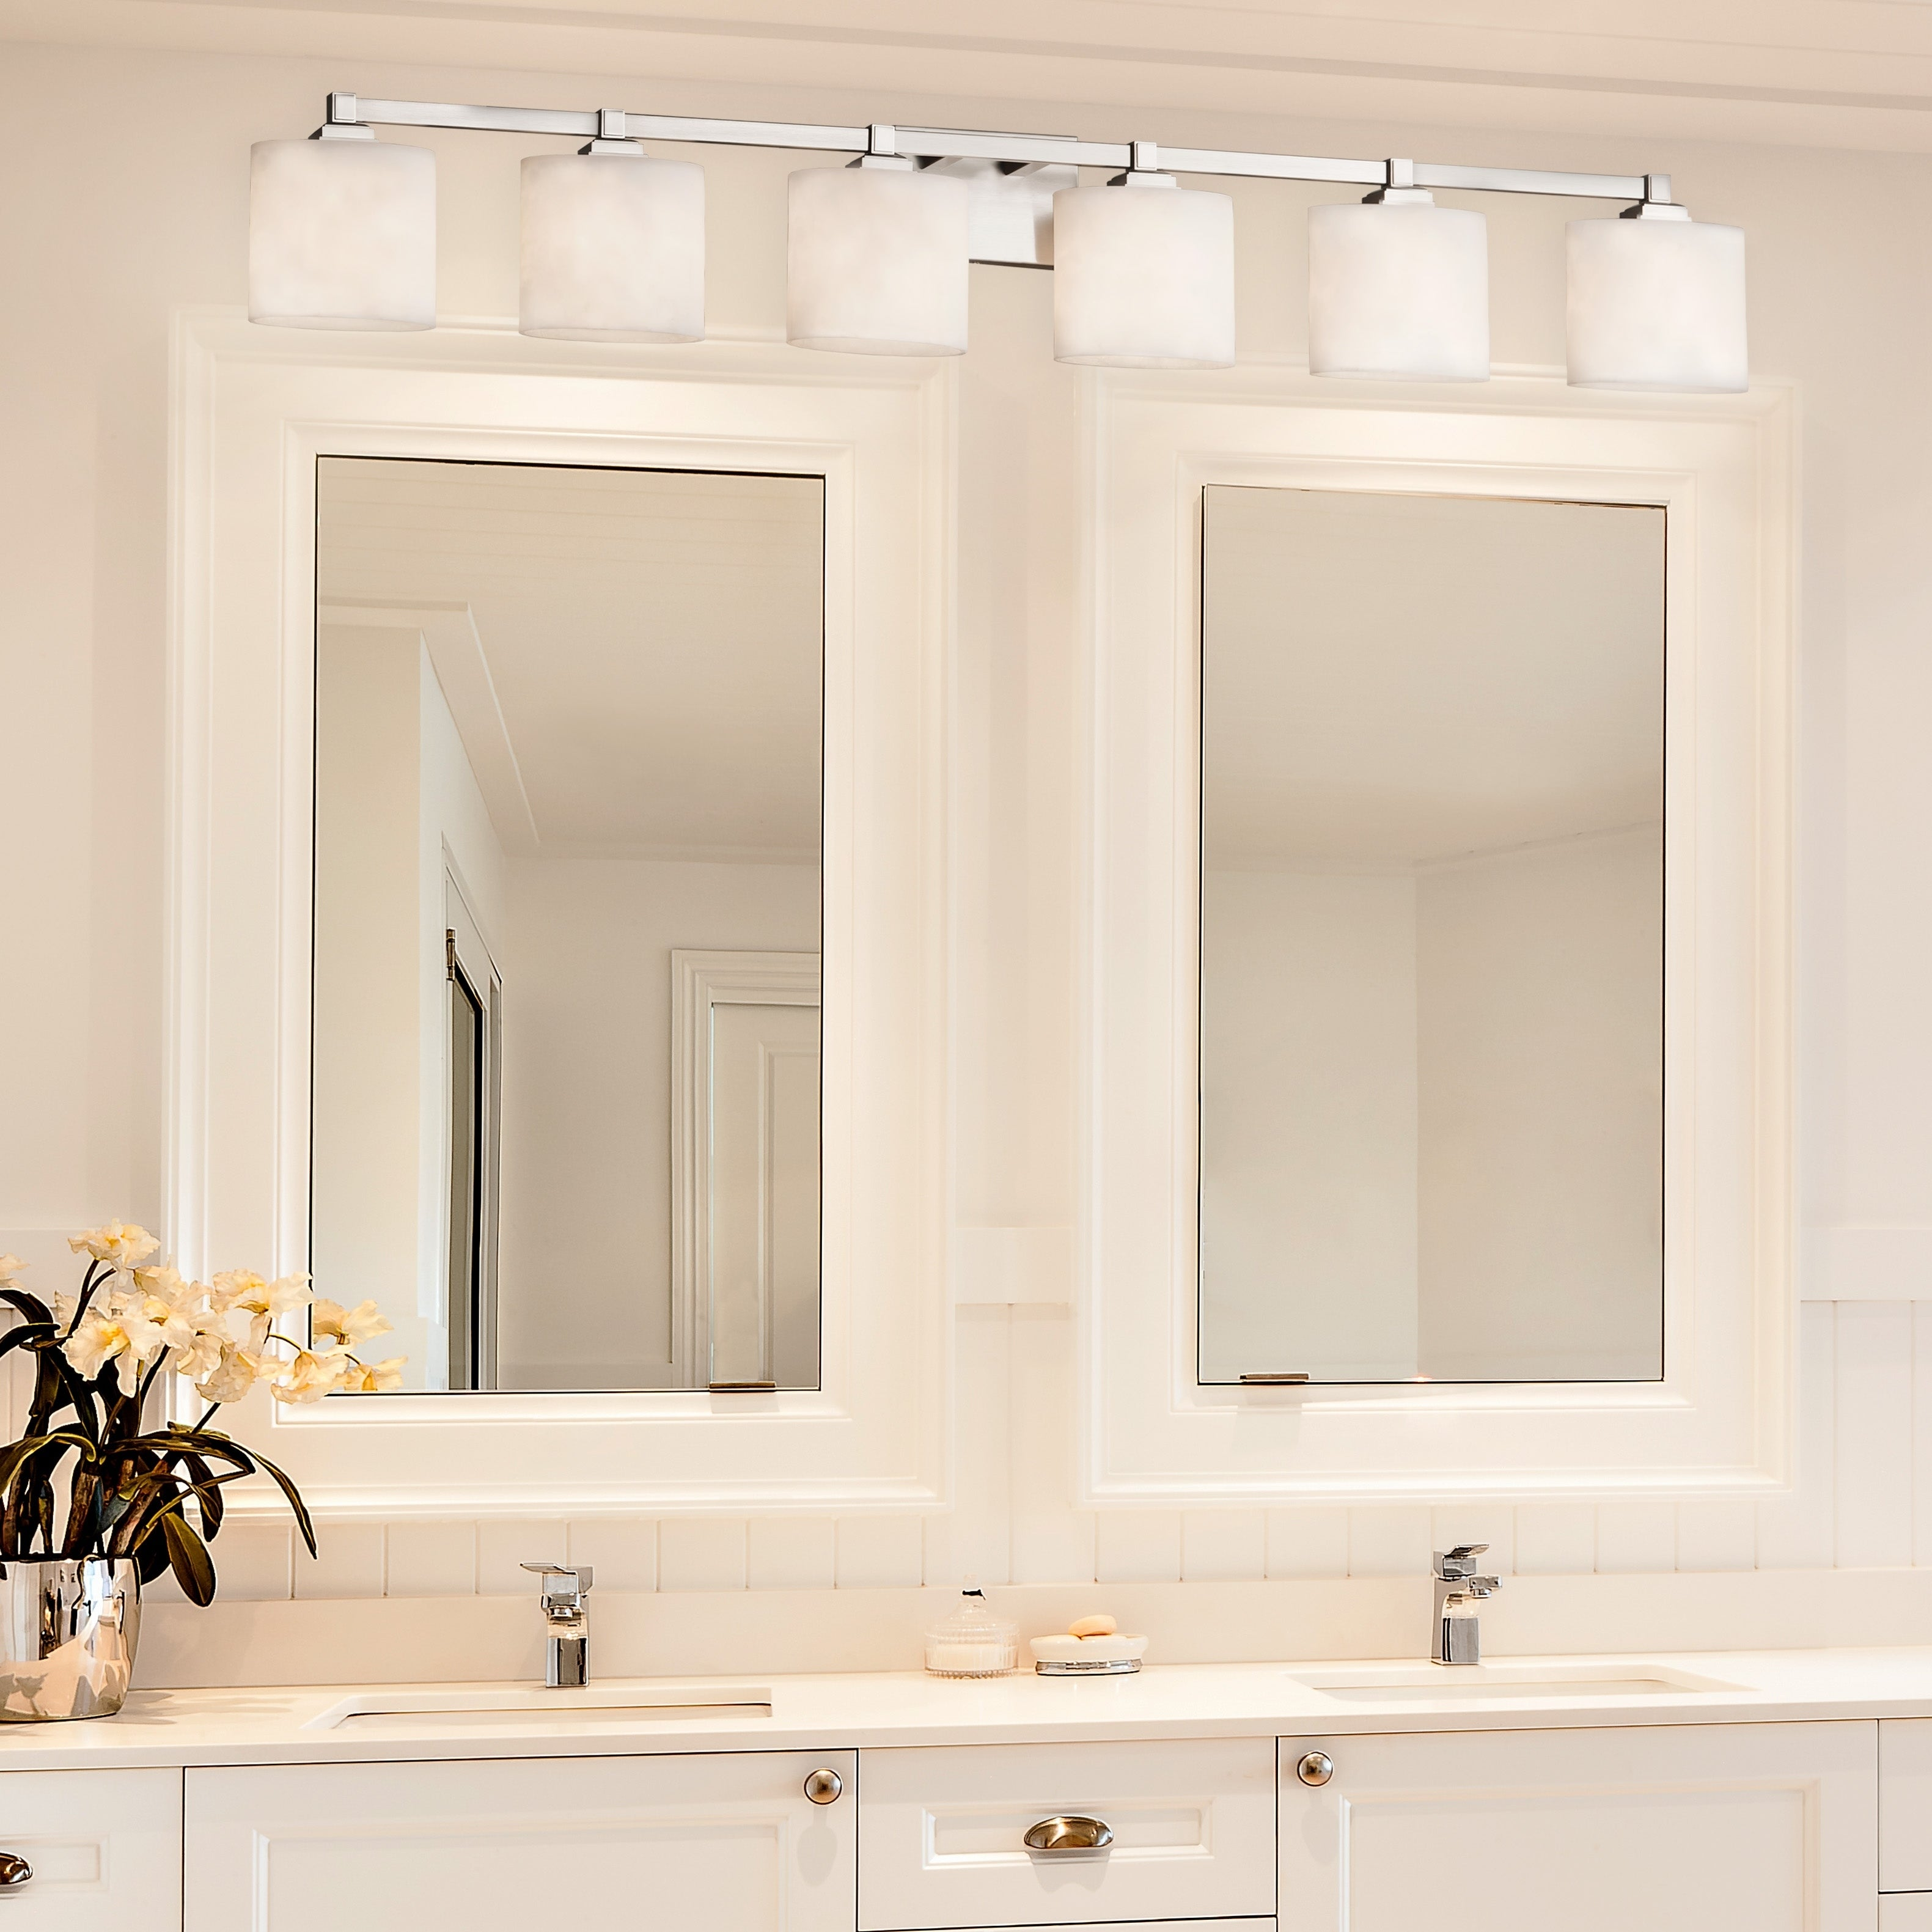 Merveilleux Justice Design Group Clouds Regency 6 Light Brushed Nickel Bath Bar, Clouds  Oval Shade   Free Shipping Today   Overstock   21852053